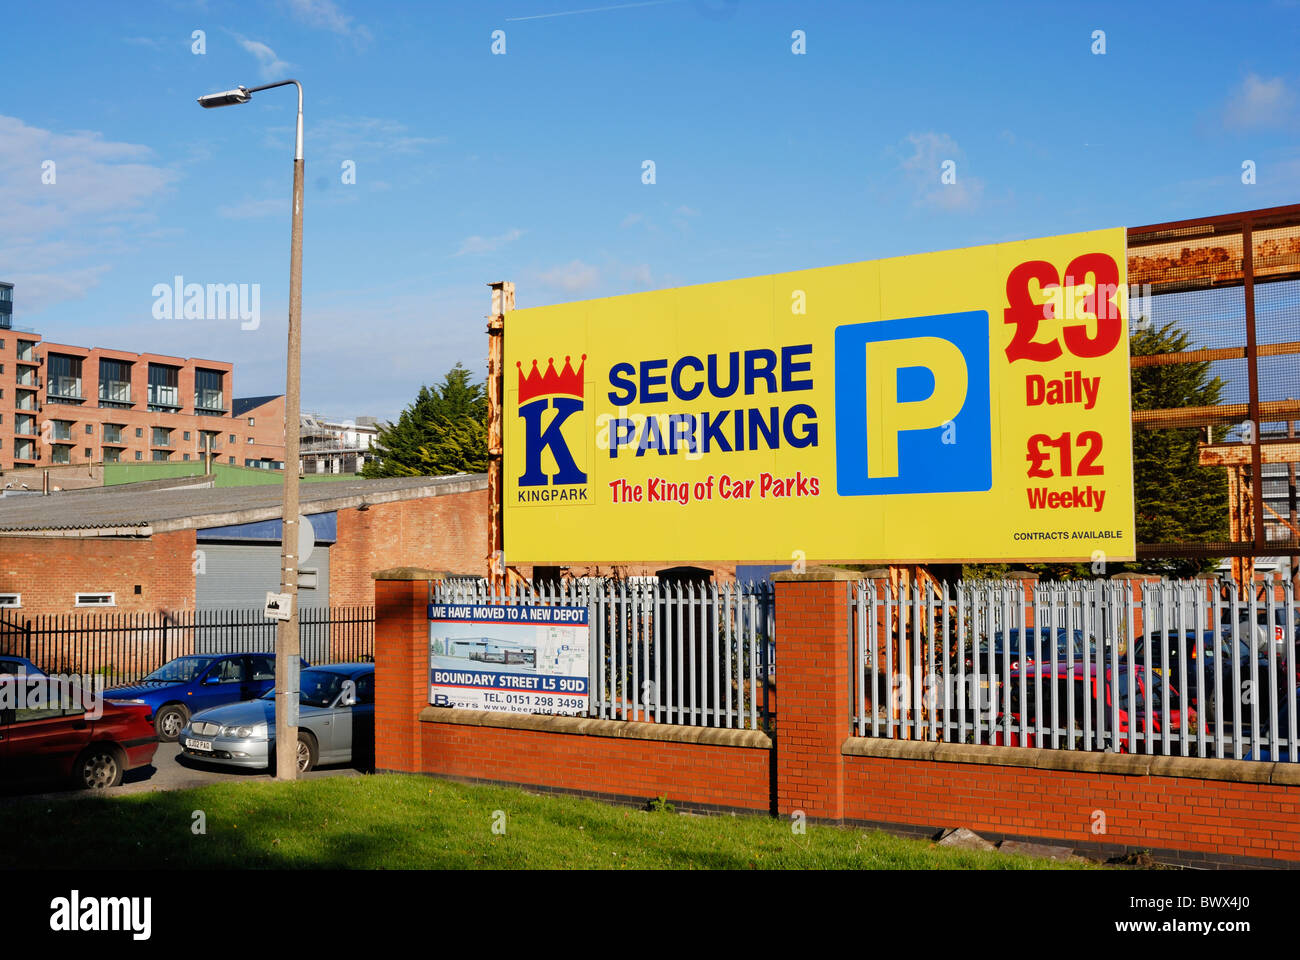 Off street secure parking near Liverpool city centre. - Stock Image